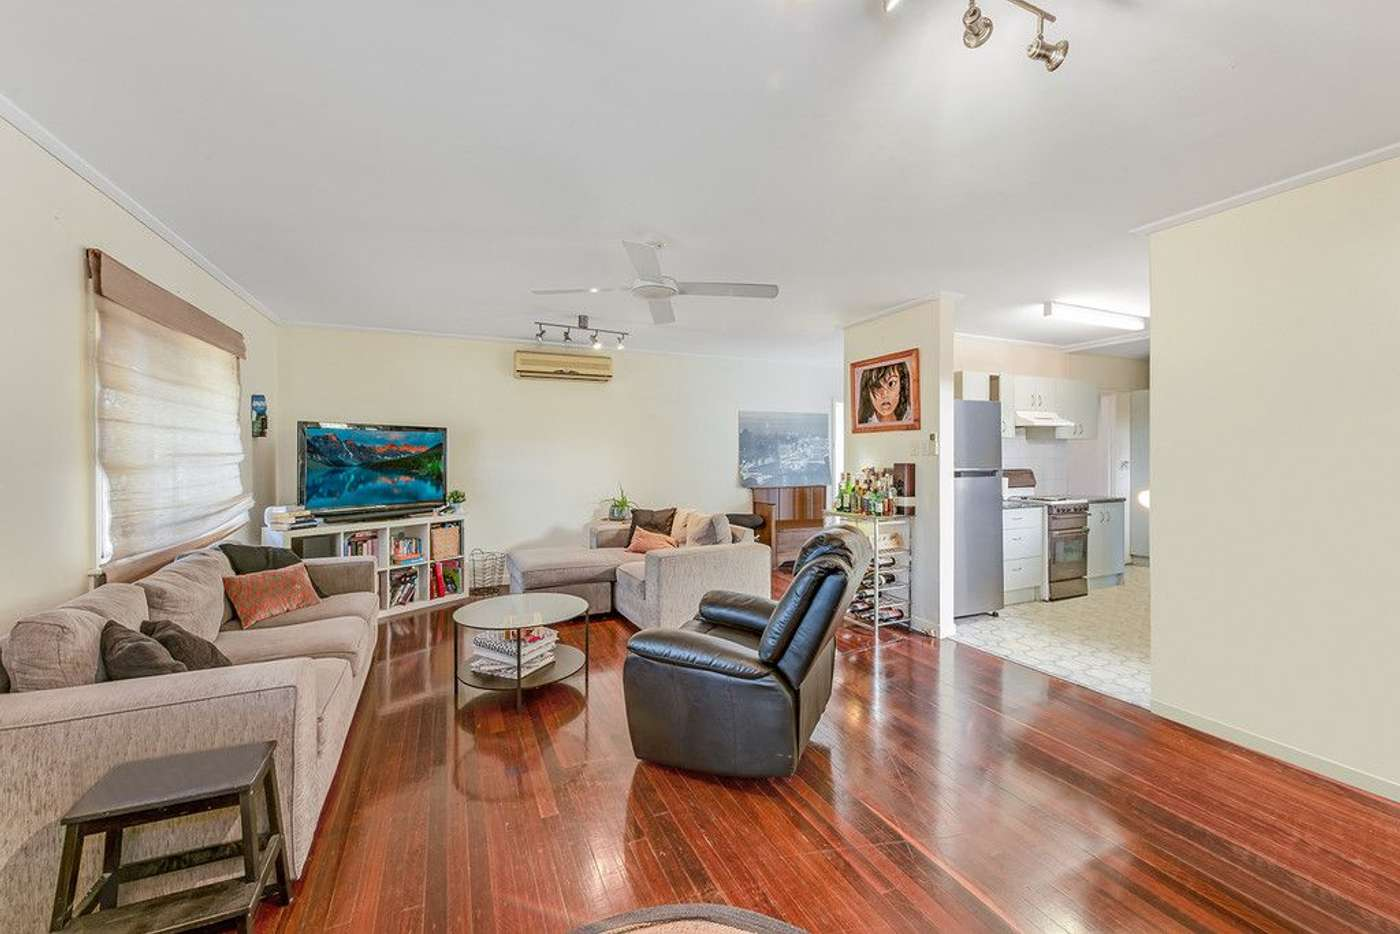 Fifth view of Homely house listing, 79 Abbeville Street, Upper Mount Gravatt QLD 4122